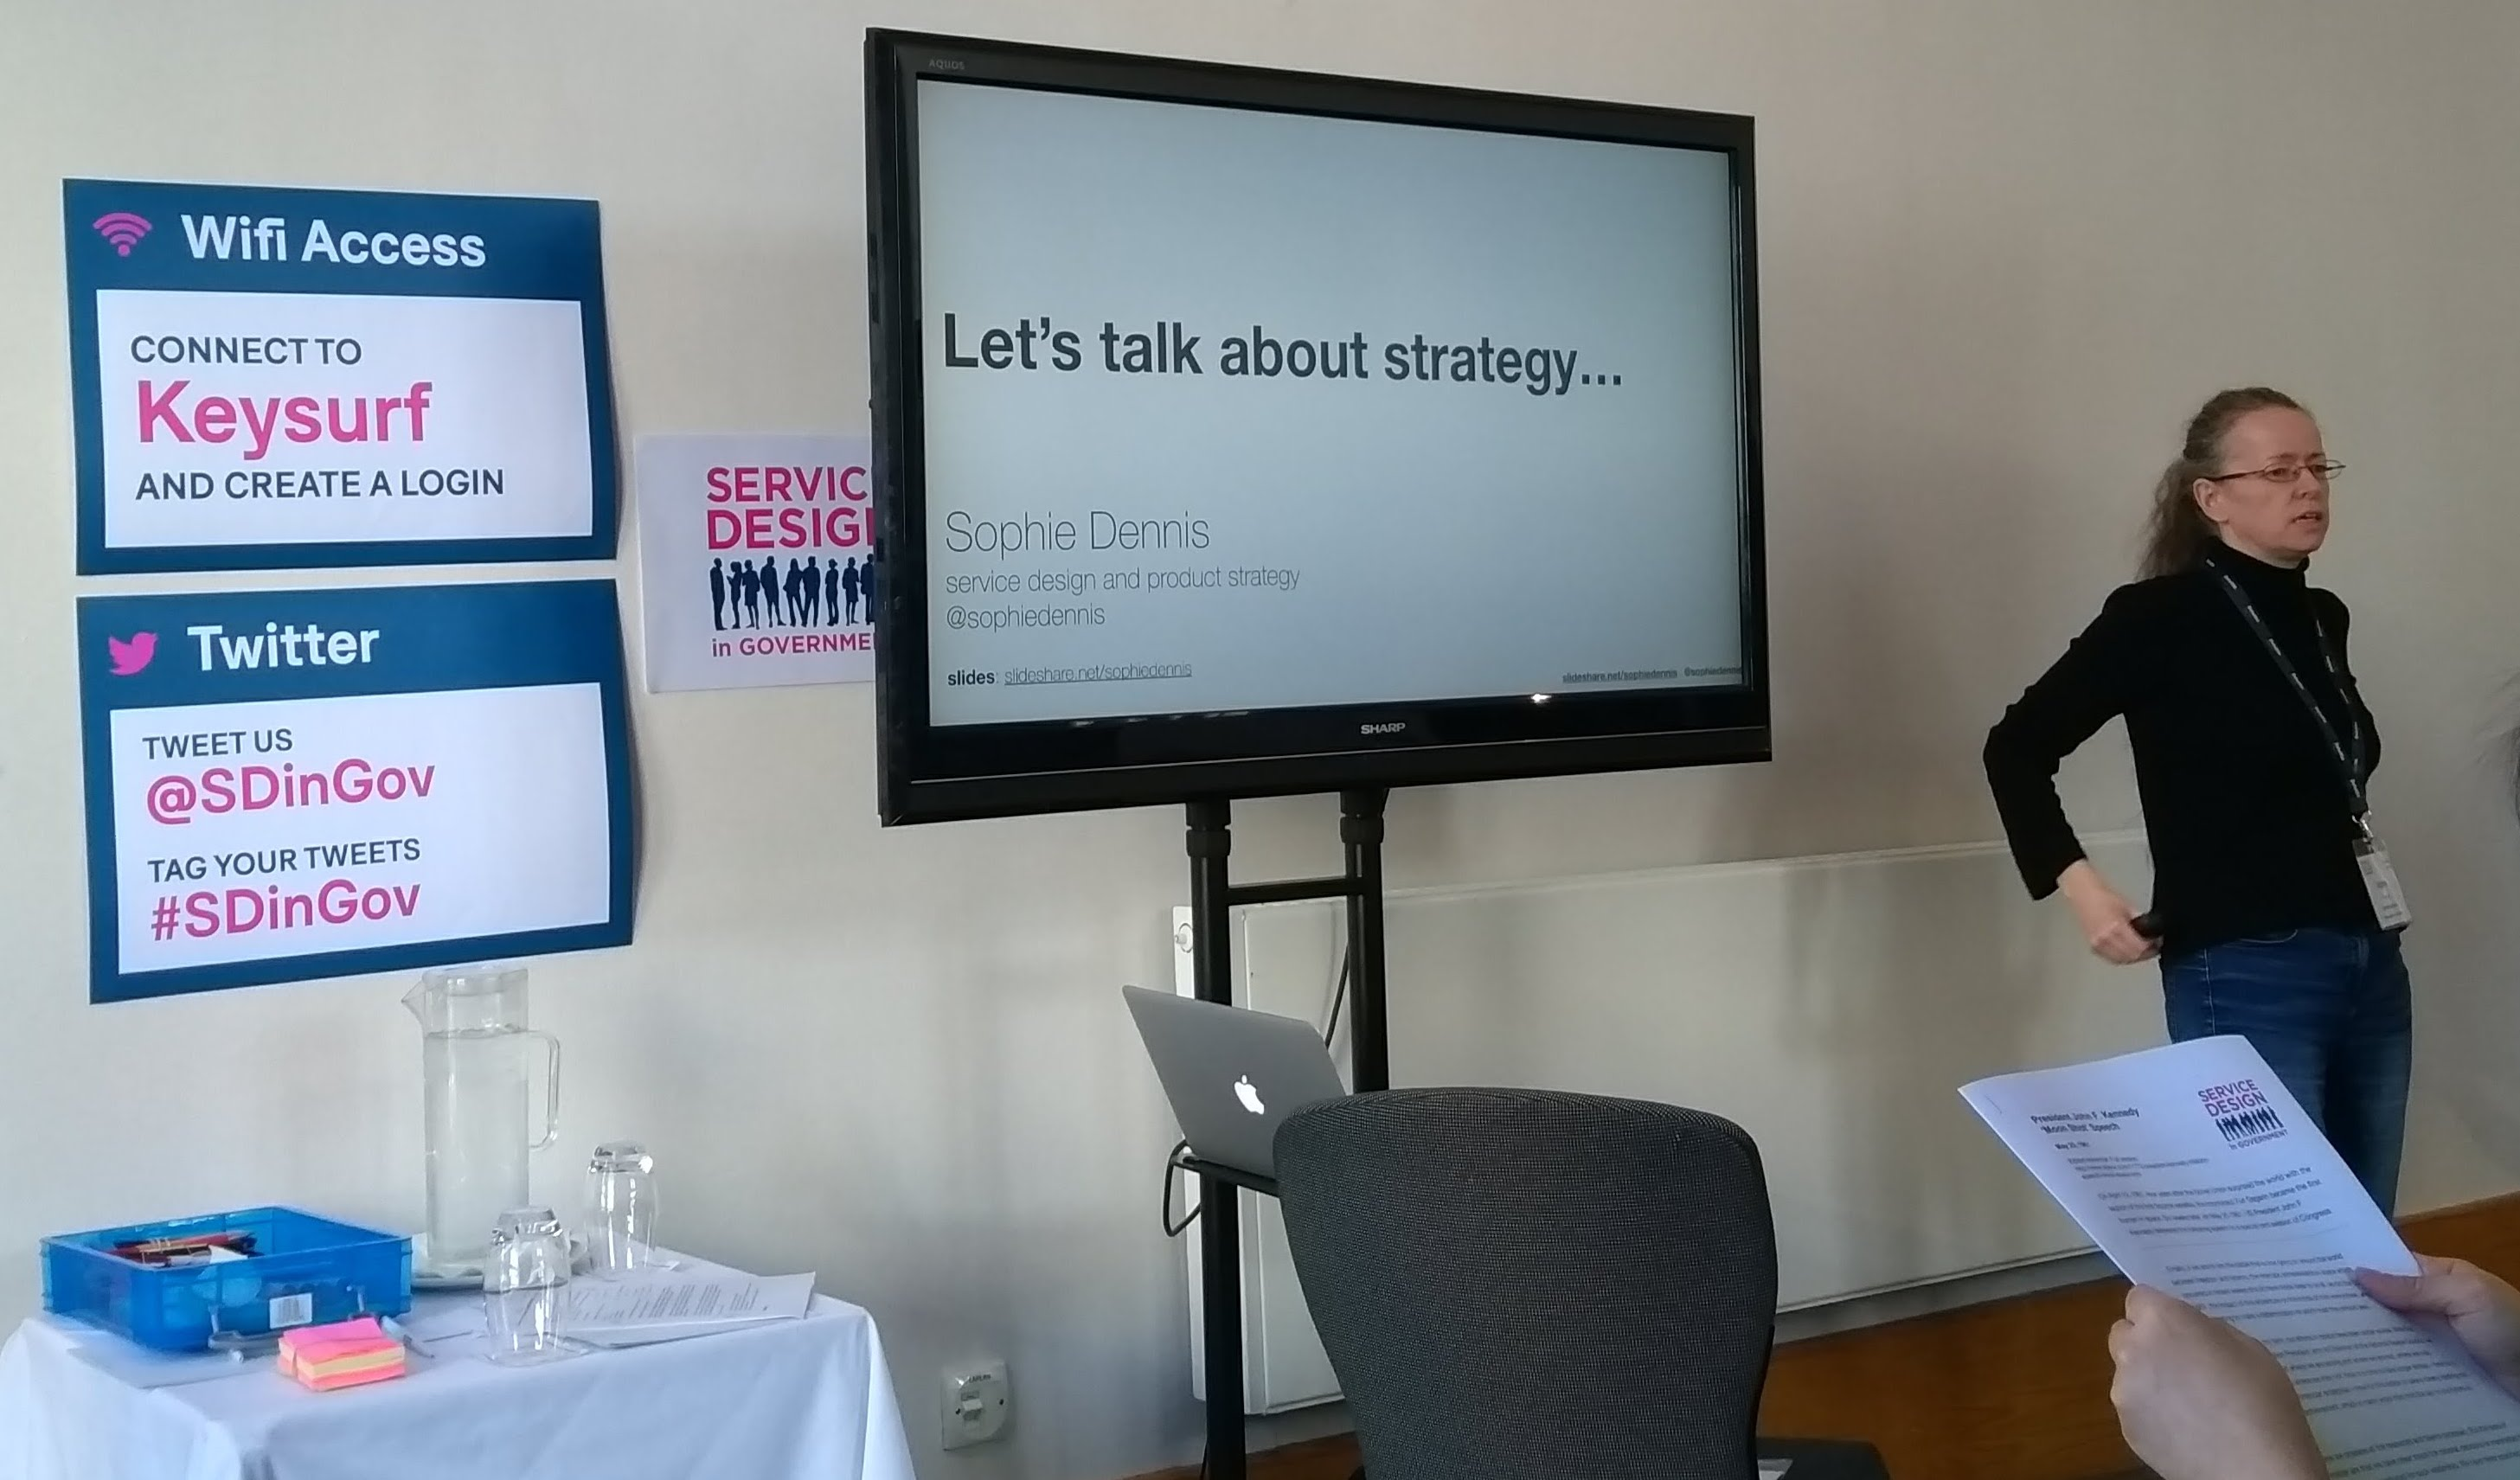 Sophie Dennis talking about strategy